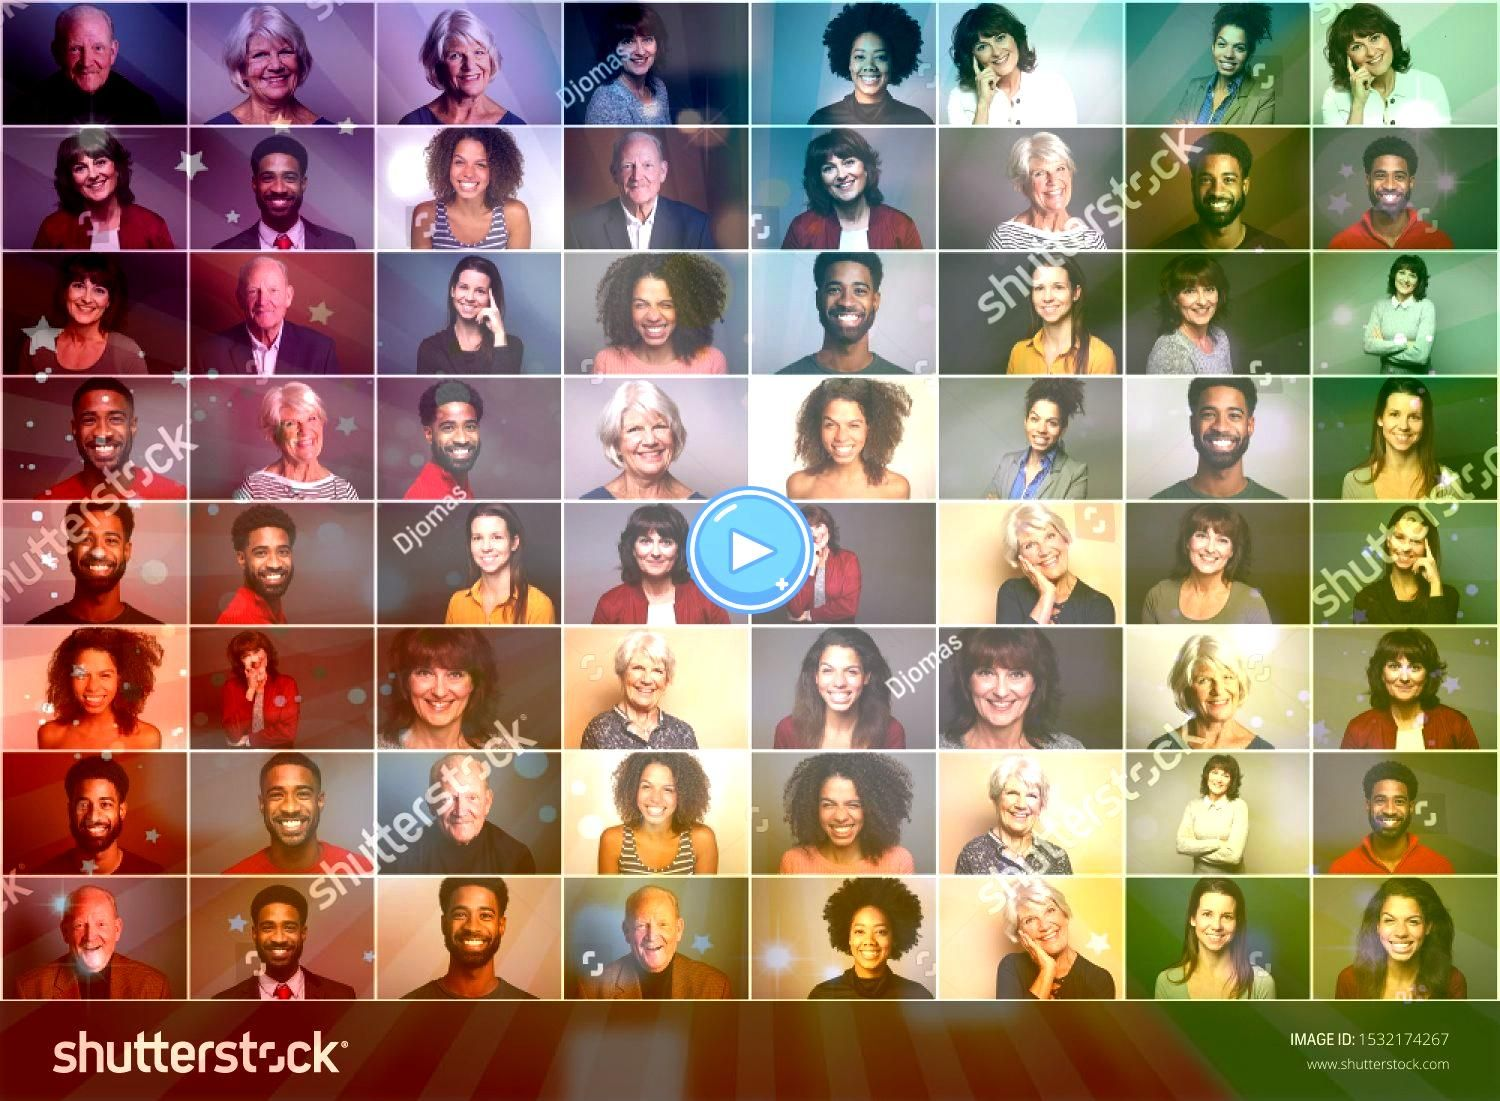 of 6 different people in front of a colored background Group of 6 different people in front of a colored background  98 degrees must have been thinking about him when the...